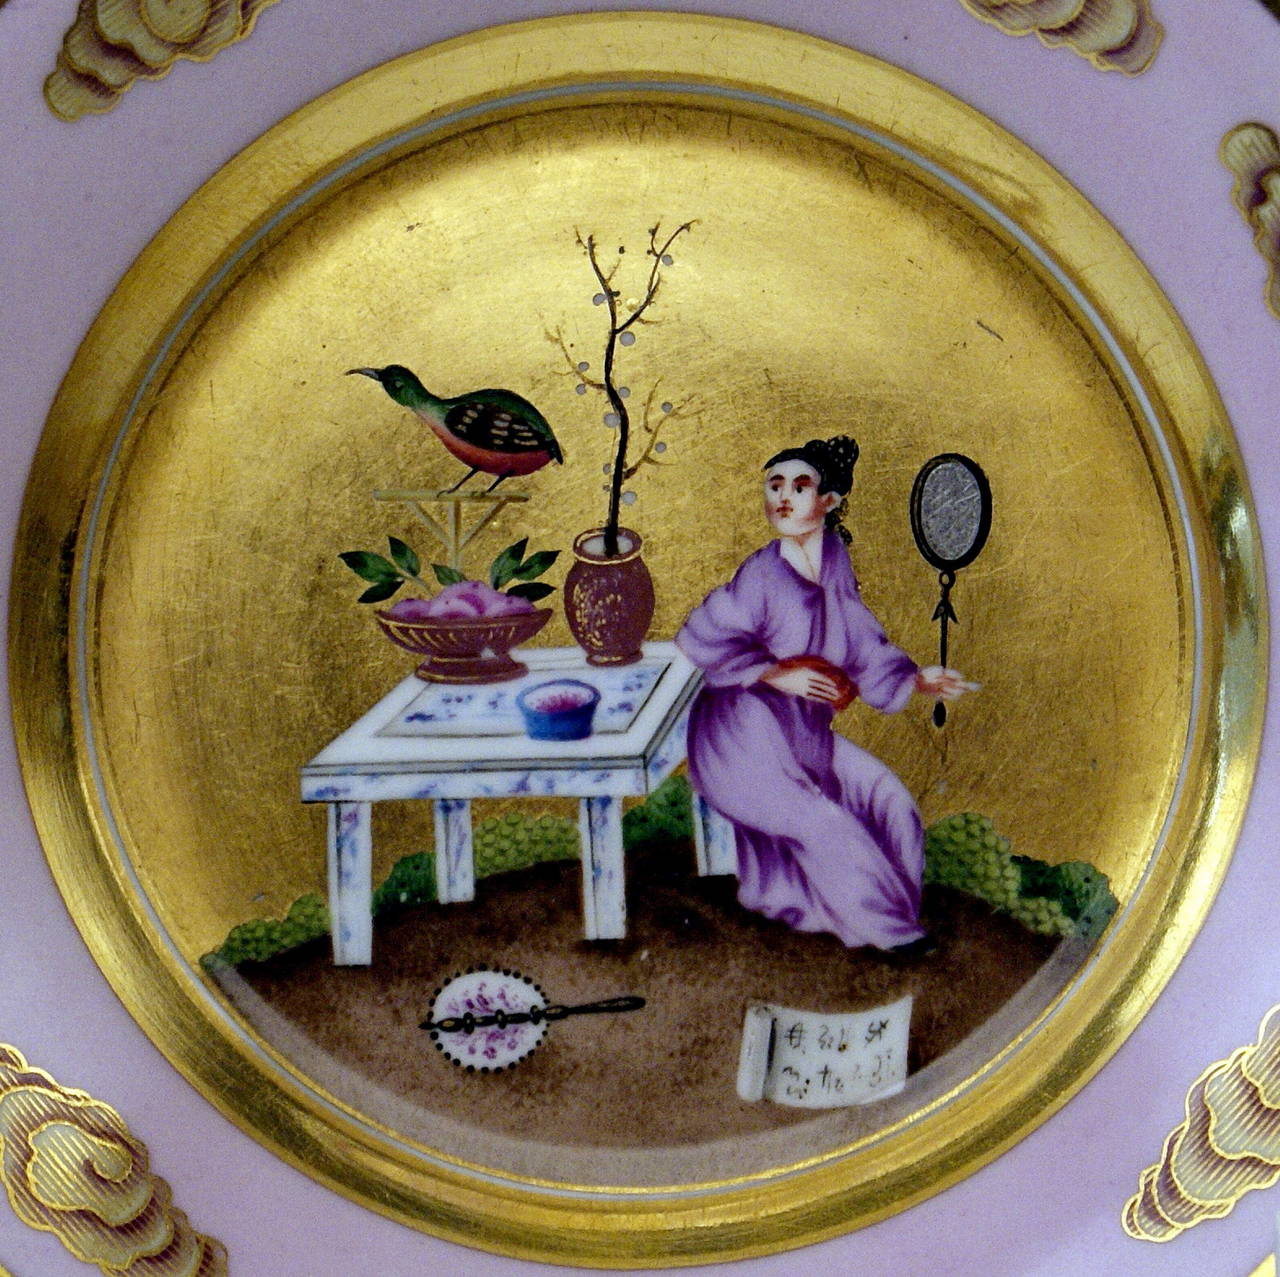 Vienna Imperial Porcelain Cup Saucer Chinese Style Paintings Dated 1817 Austria For Sale 2